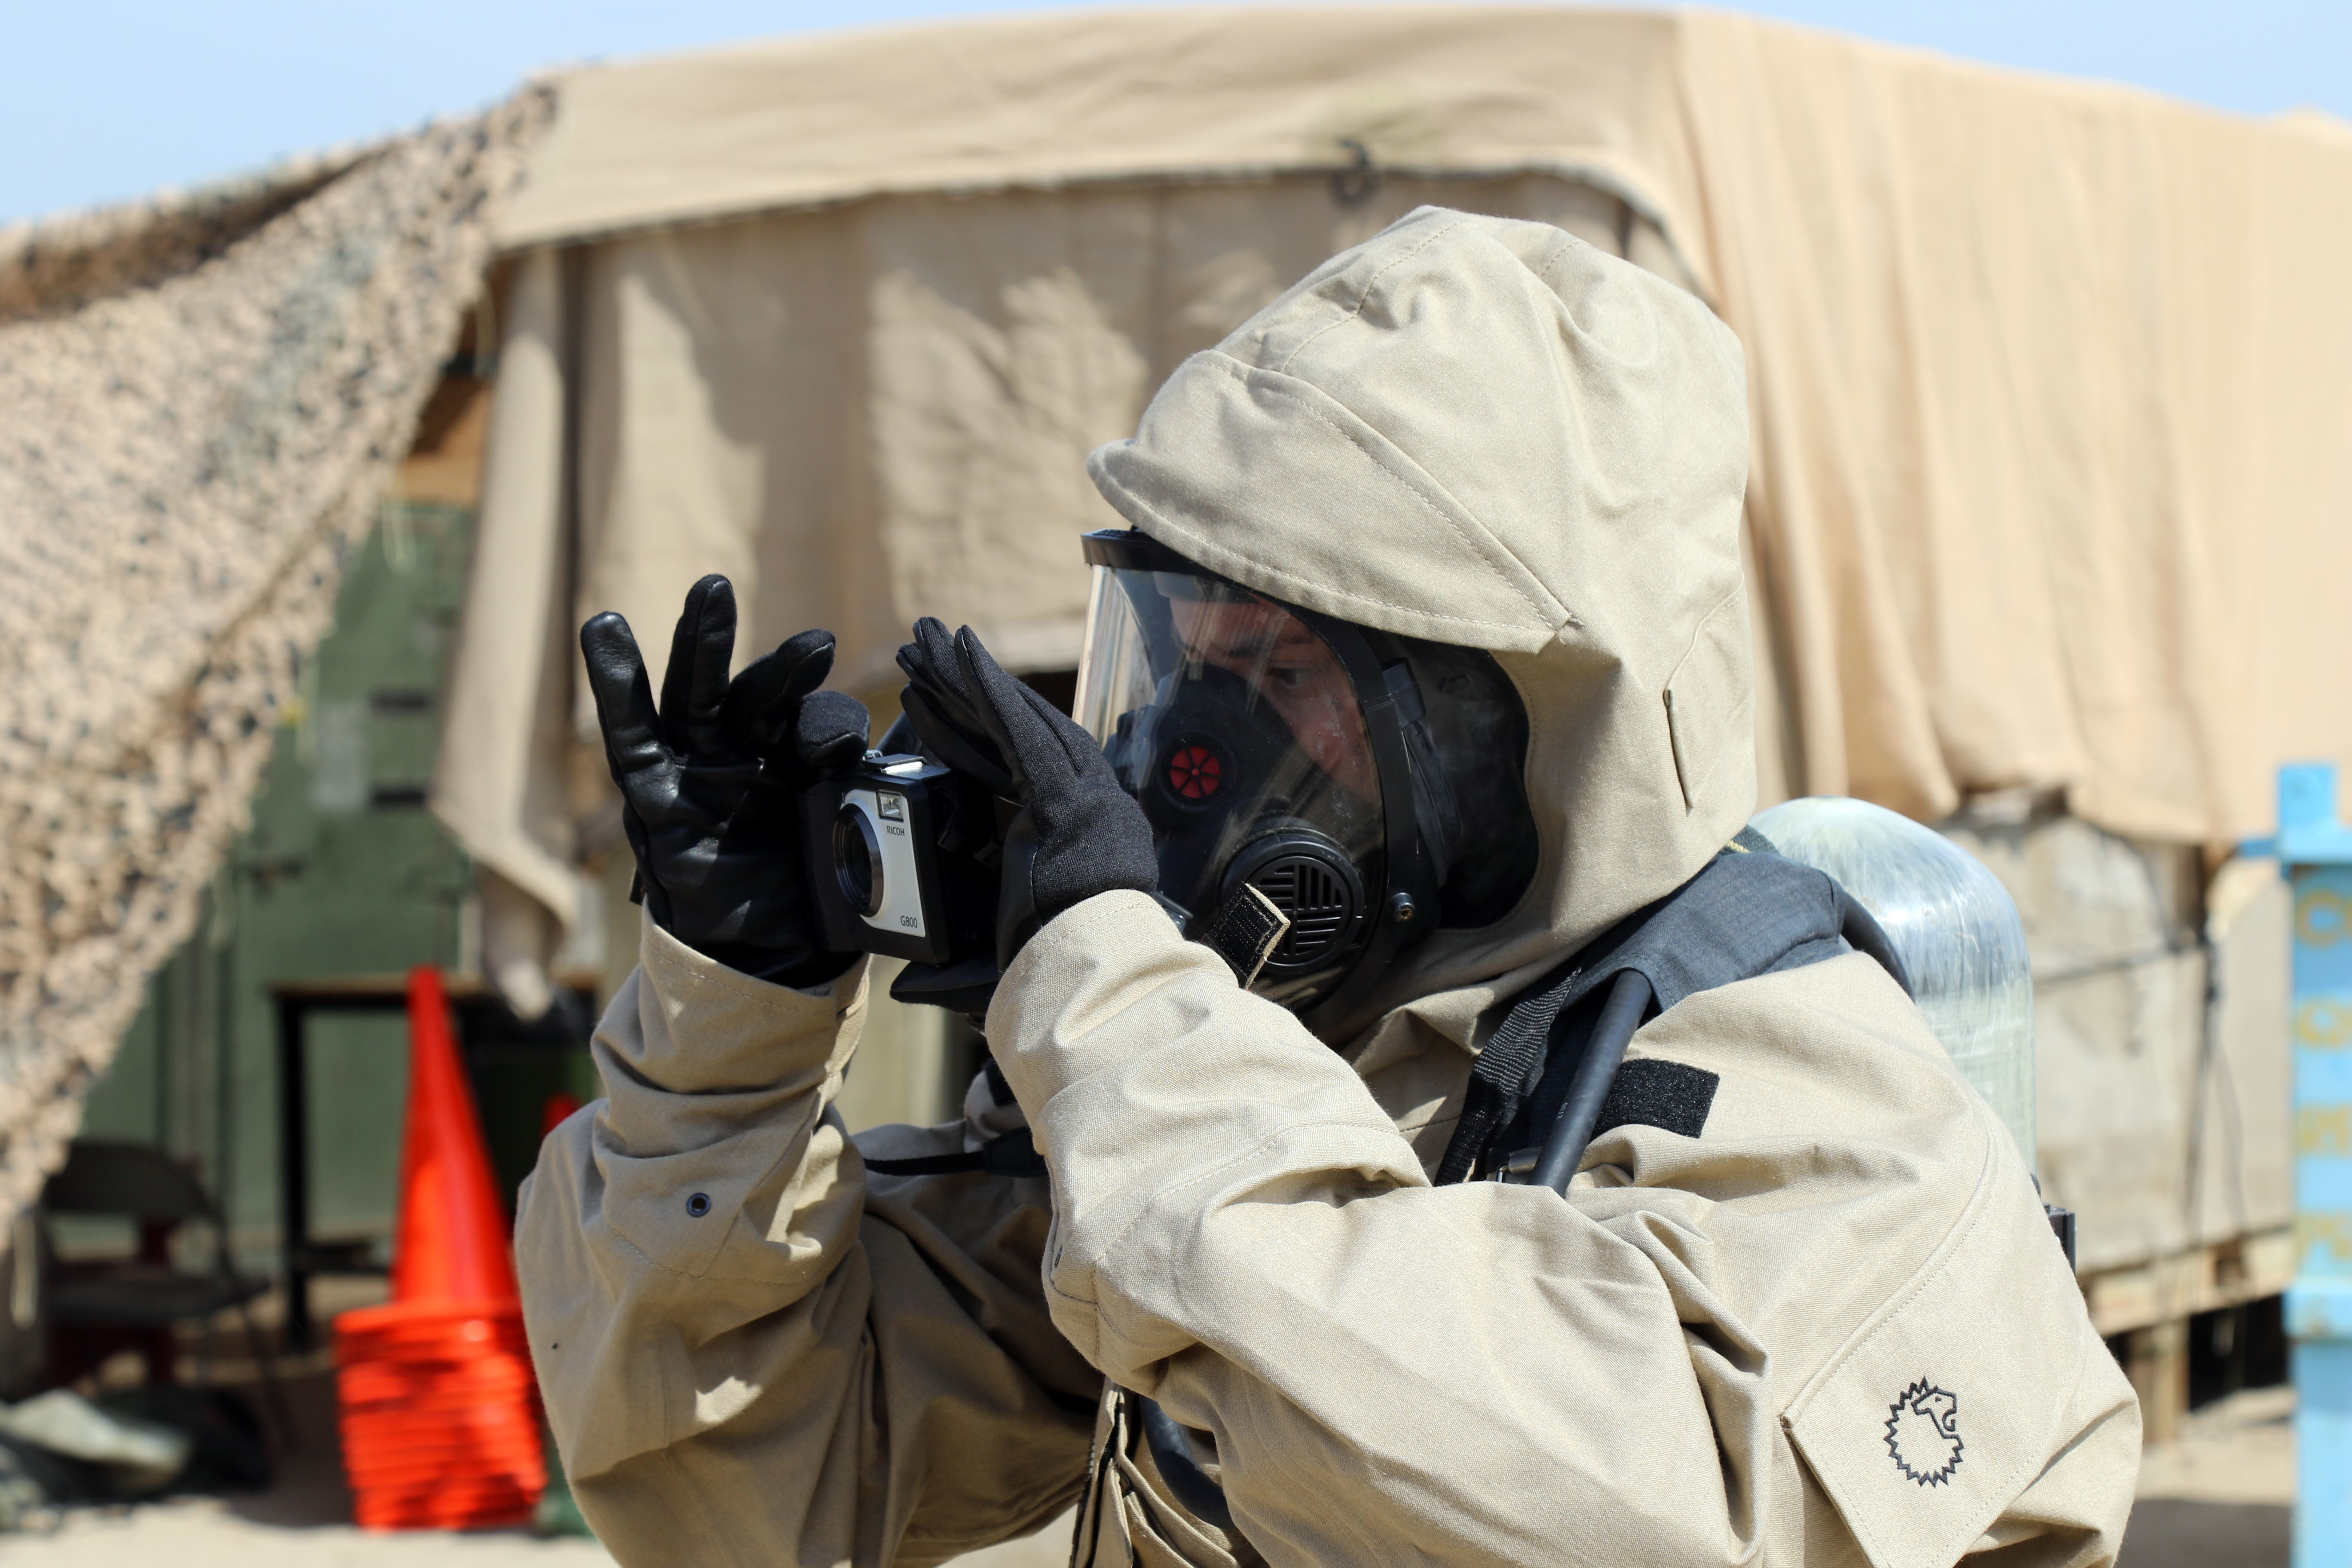 Soldiers share Chemical, Biological, Radiological, and Nuclear